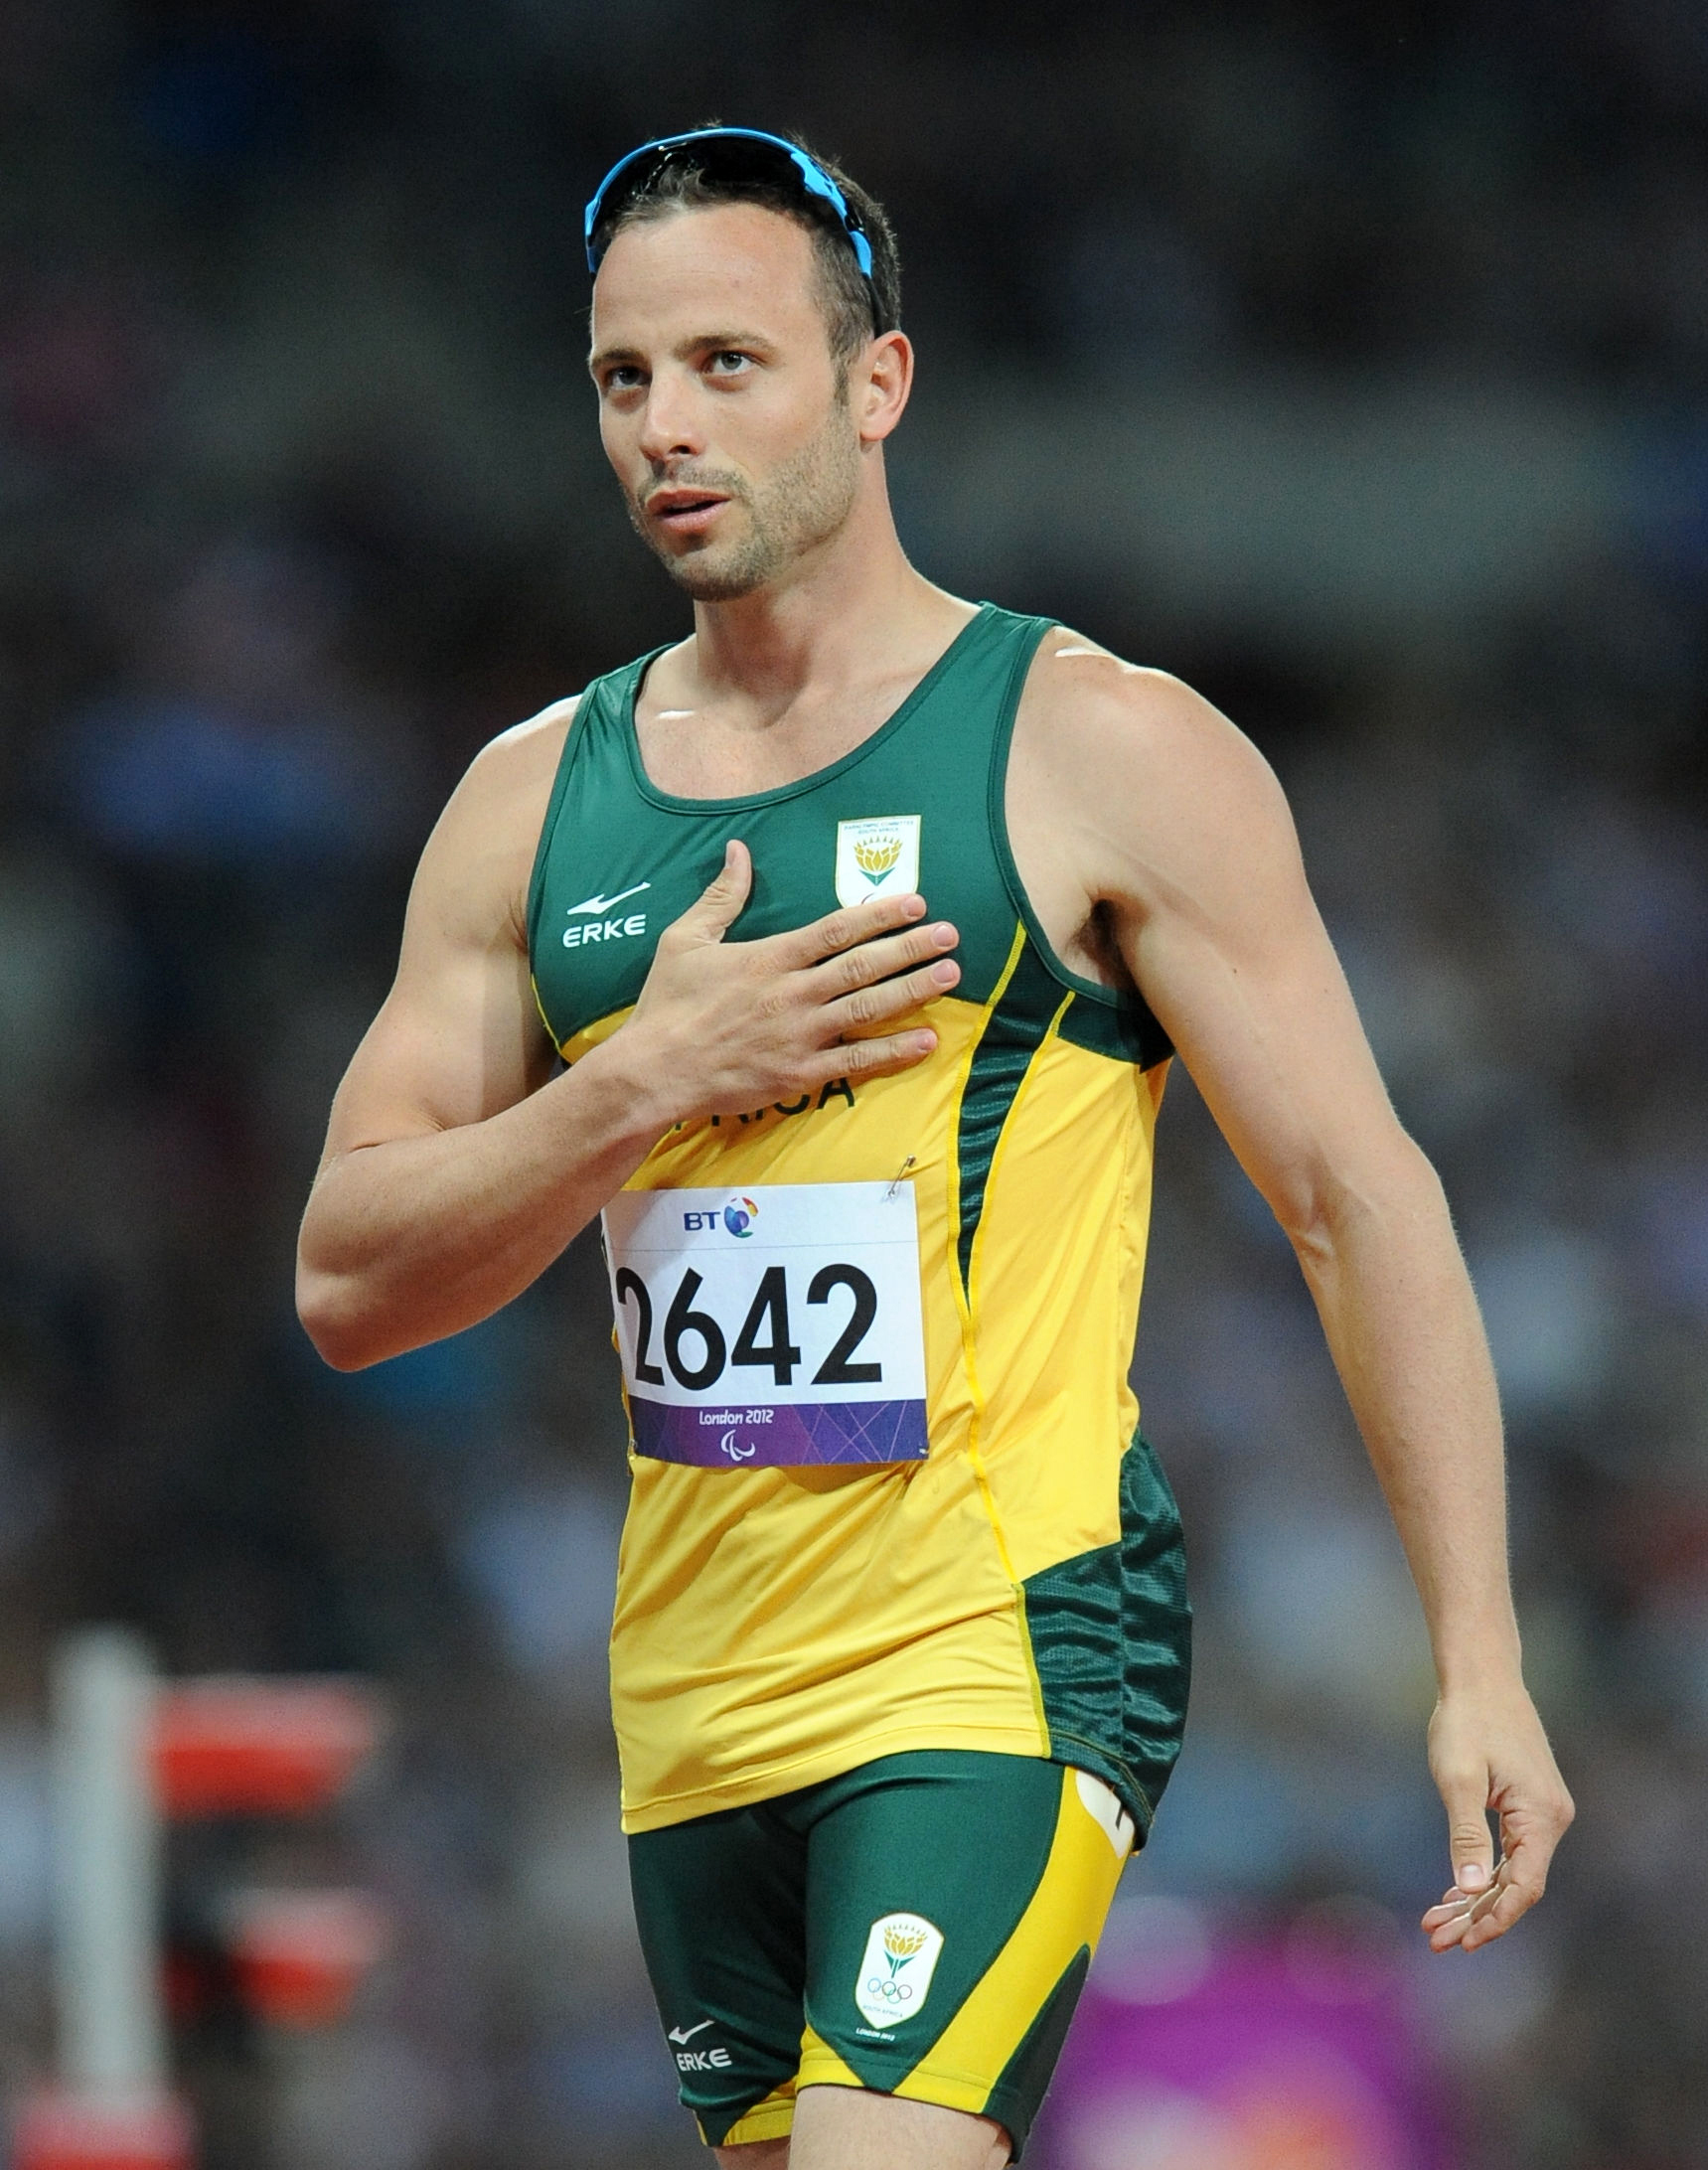 Oscar Pistorius 'nearly accidentally shot friend weeks before Reeva Steenkamp death'